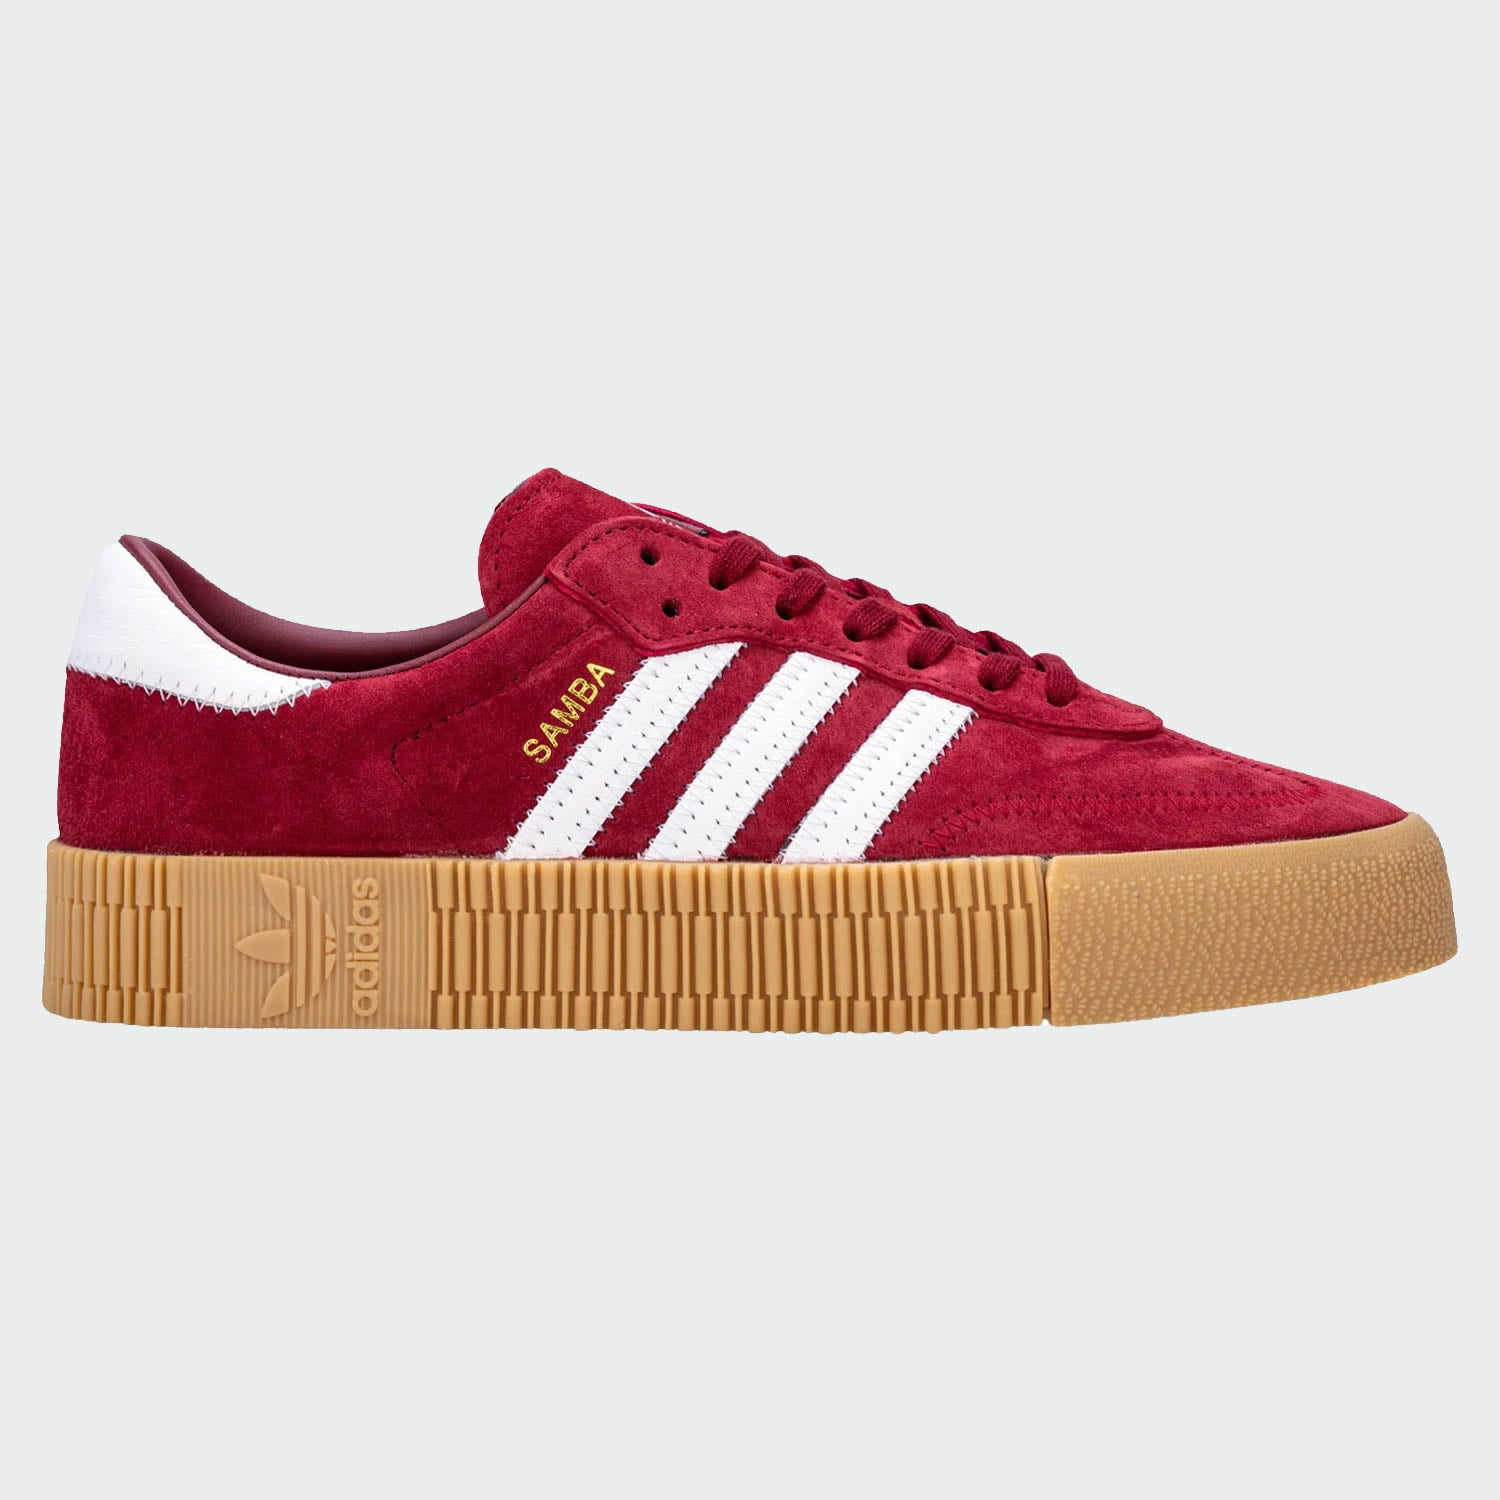 new arrivals picked up undefeated x adidas Originals Women's Samba Rose Trainers - Burgundy